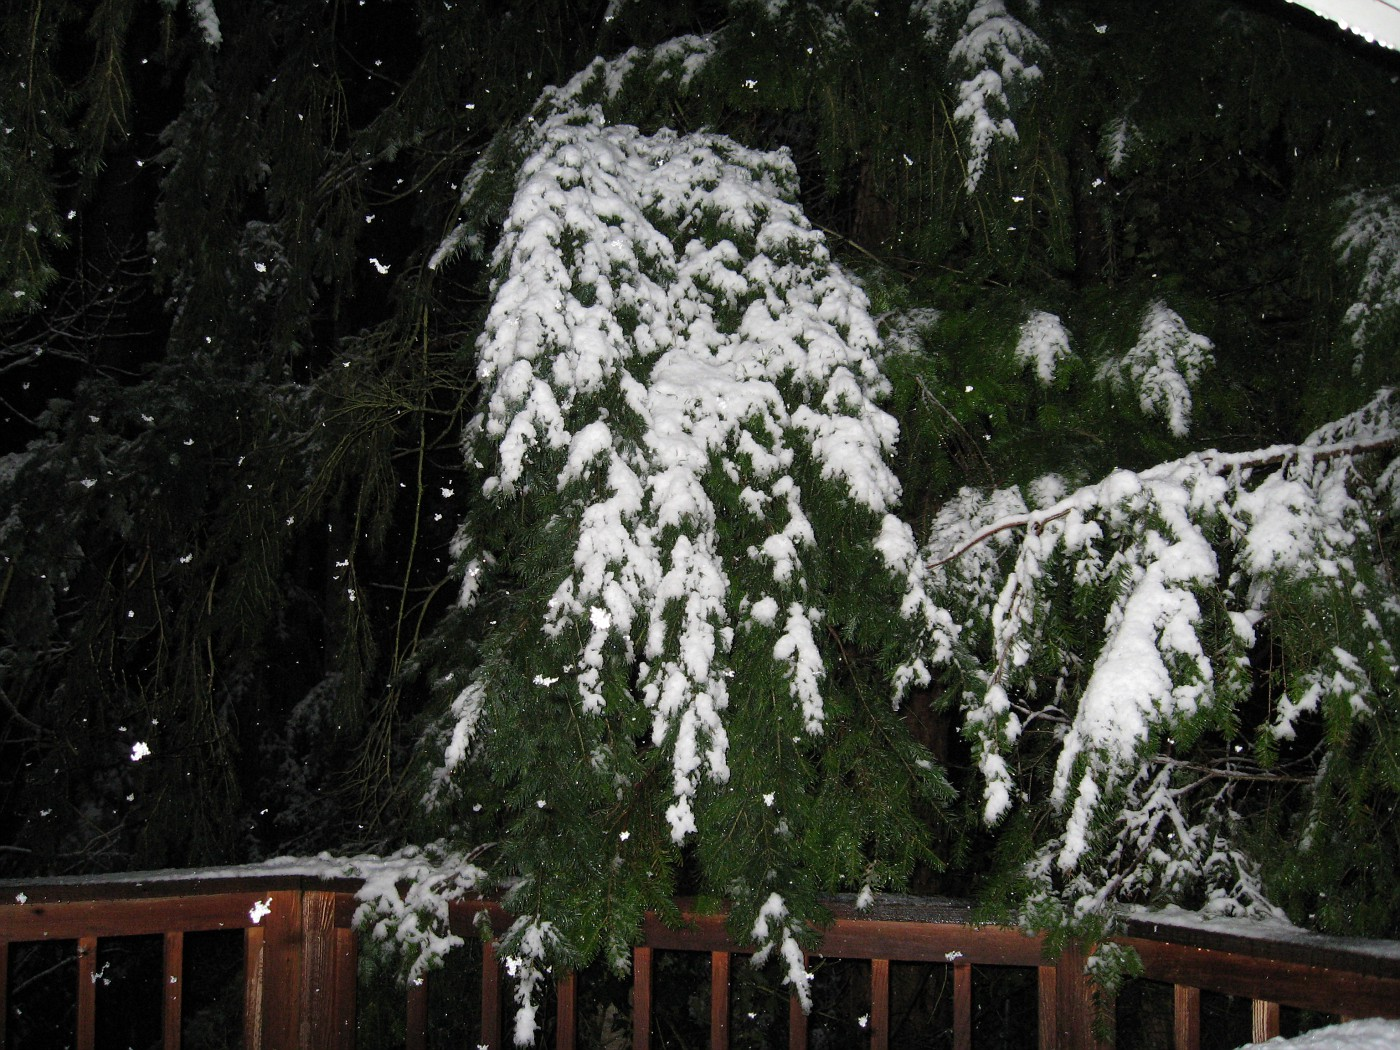 Sammamish, Wa, March 29, 2008